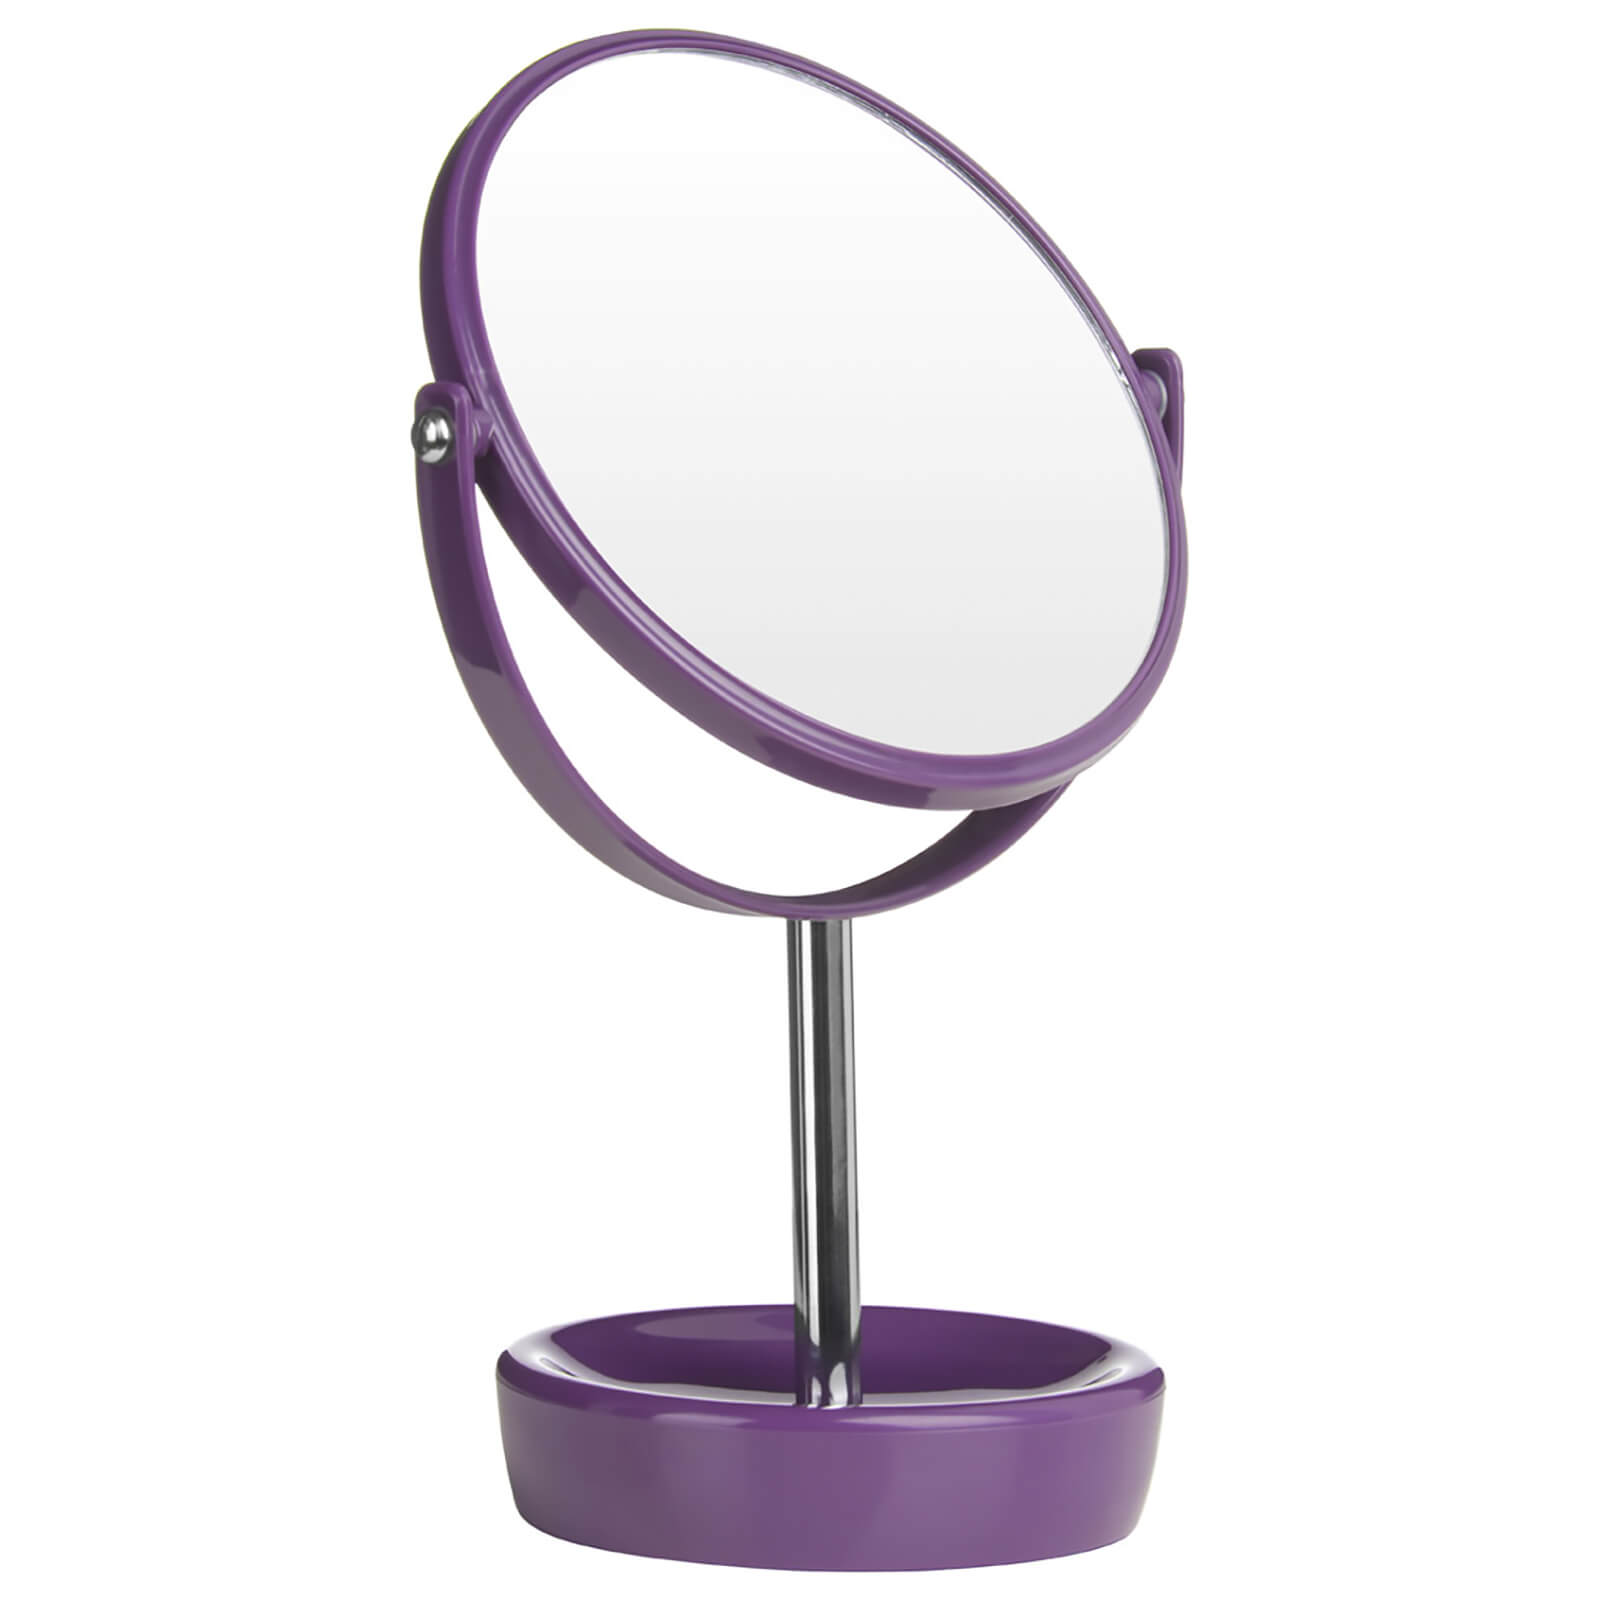 Premier Housewares Swivel Table Mirror with Magnifying Option - Purple Plastic/Chrome